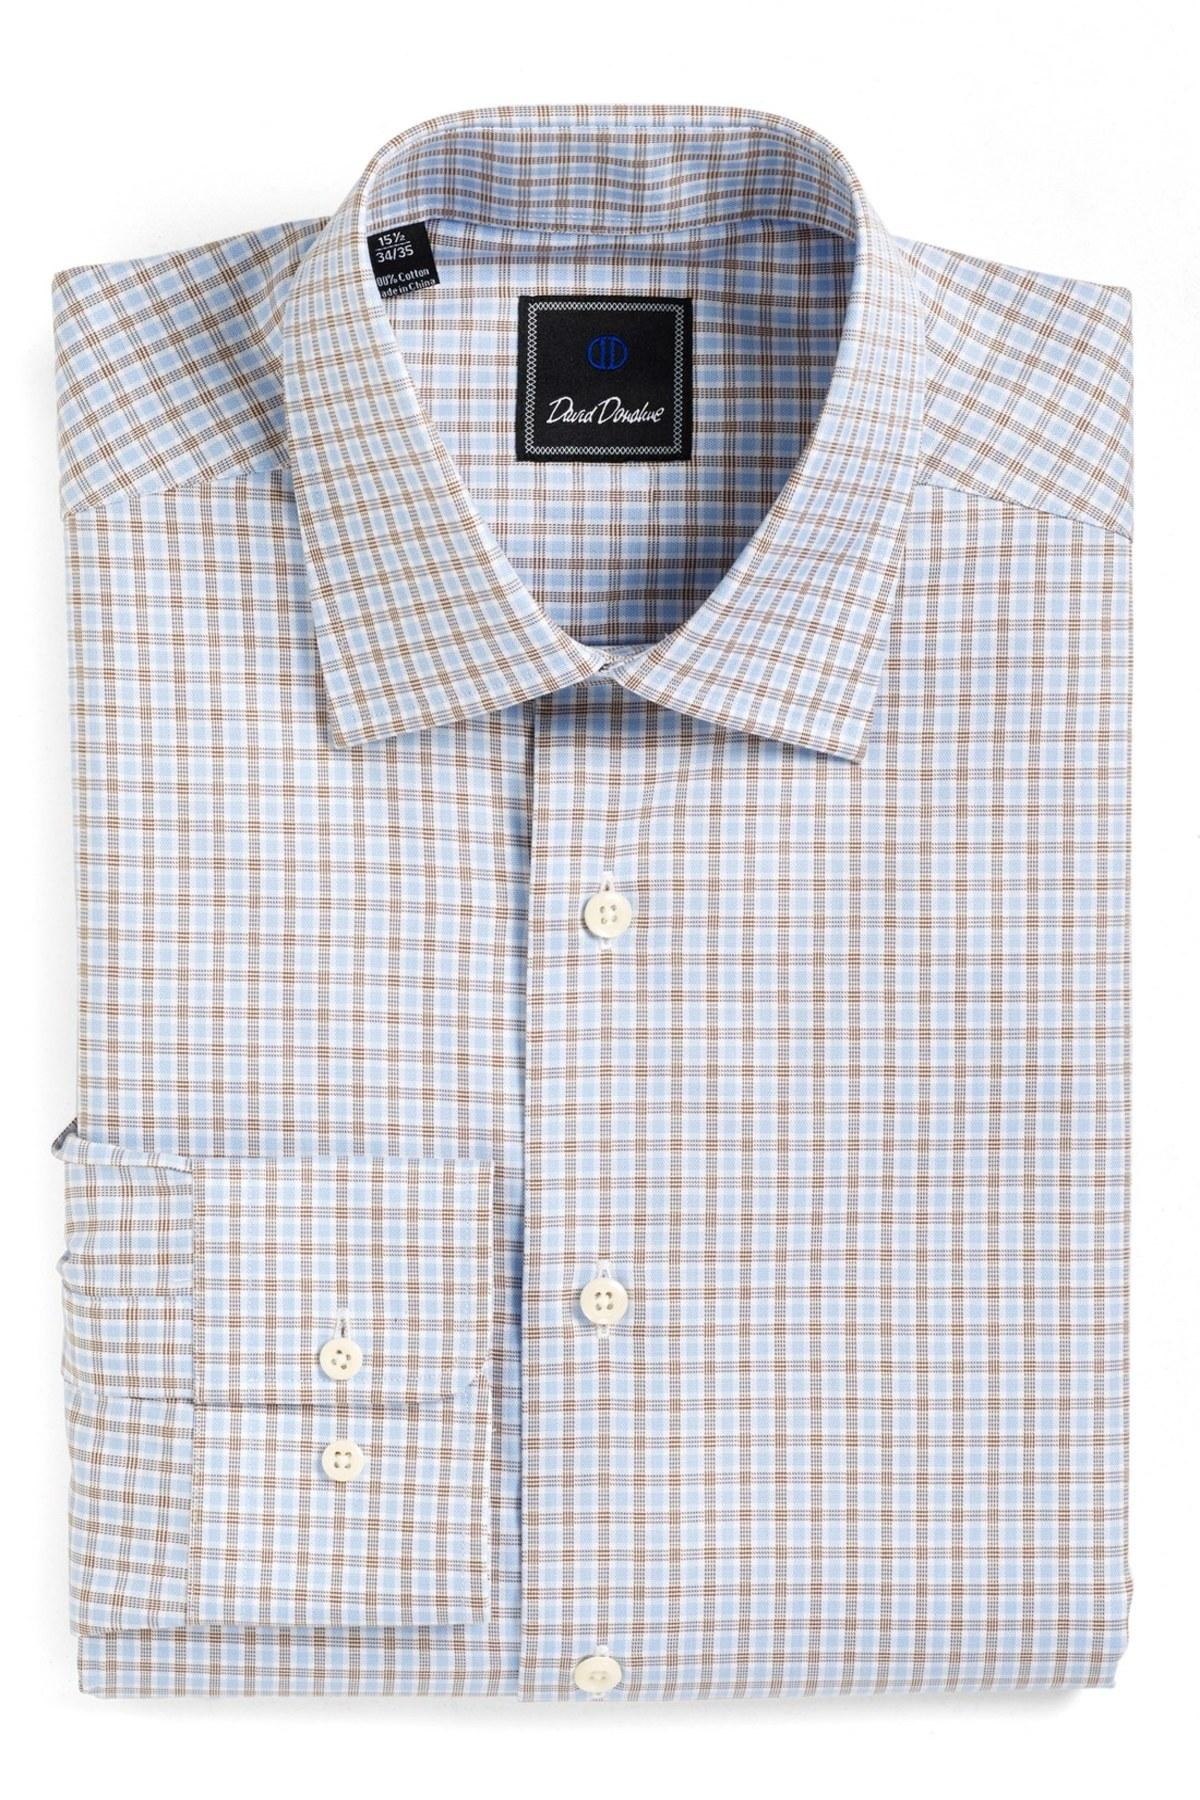 David donahue check regular fit dress shirt in blue for for David donahue french cuff shirts